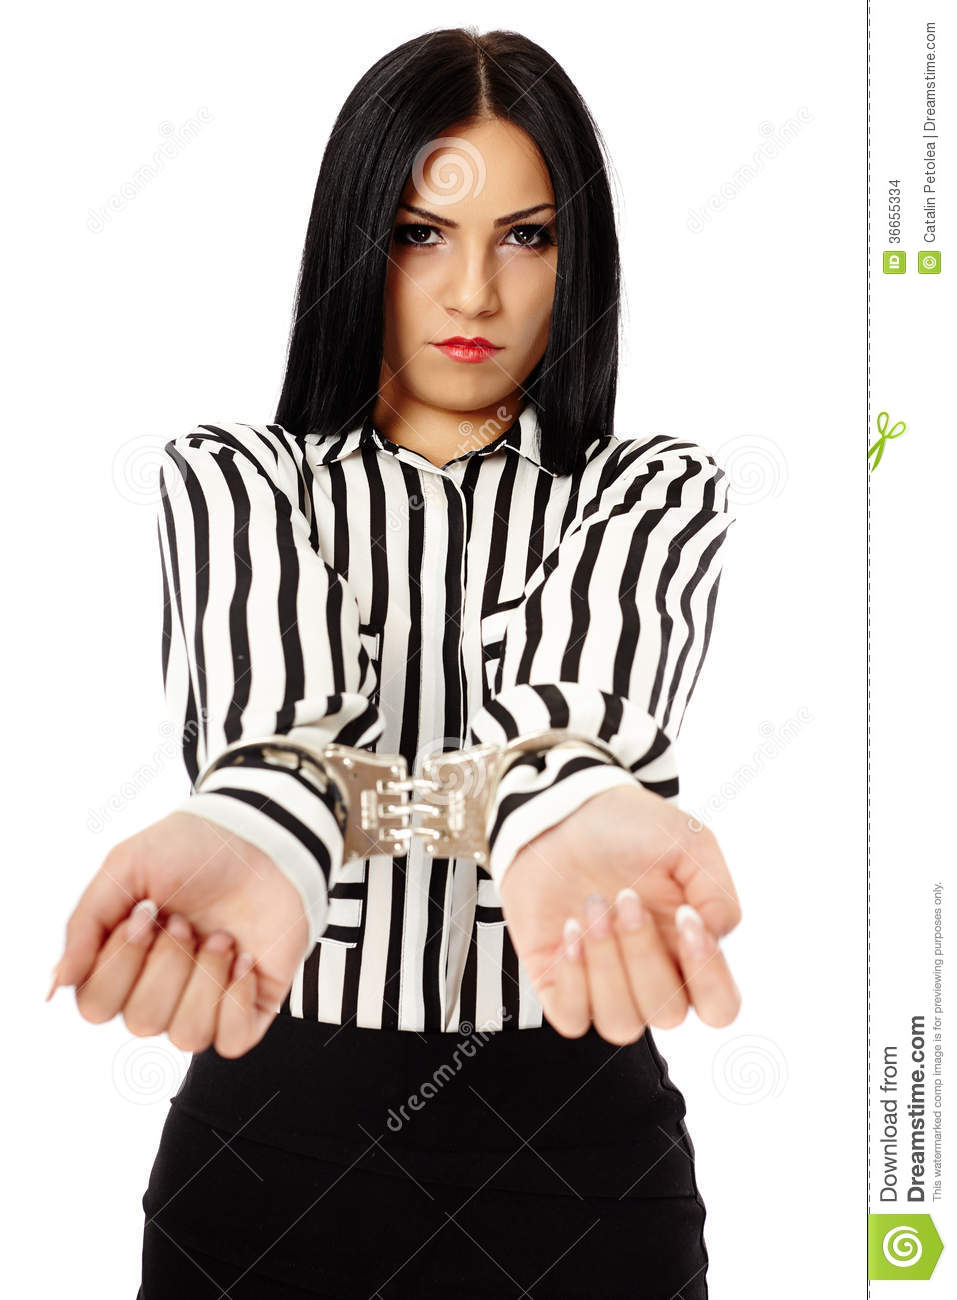 Young businesswoman with handcuffs isolated on white background.